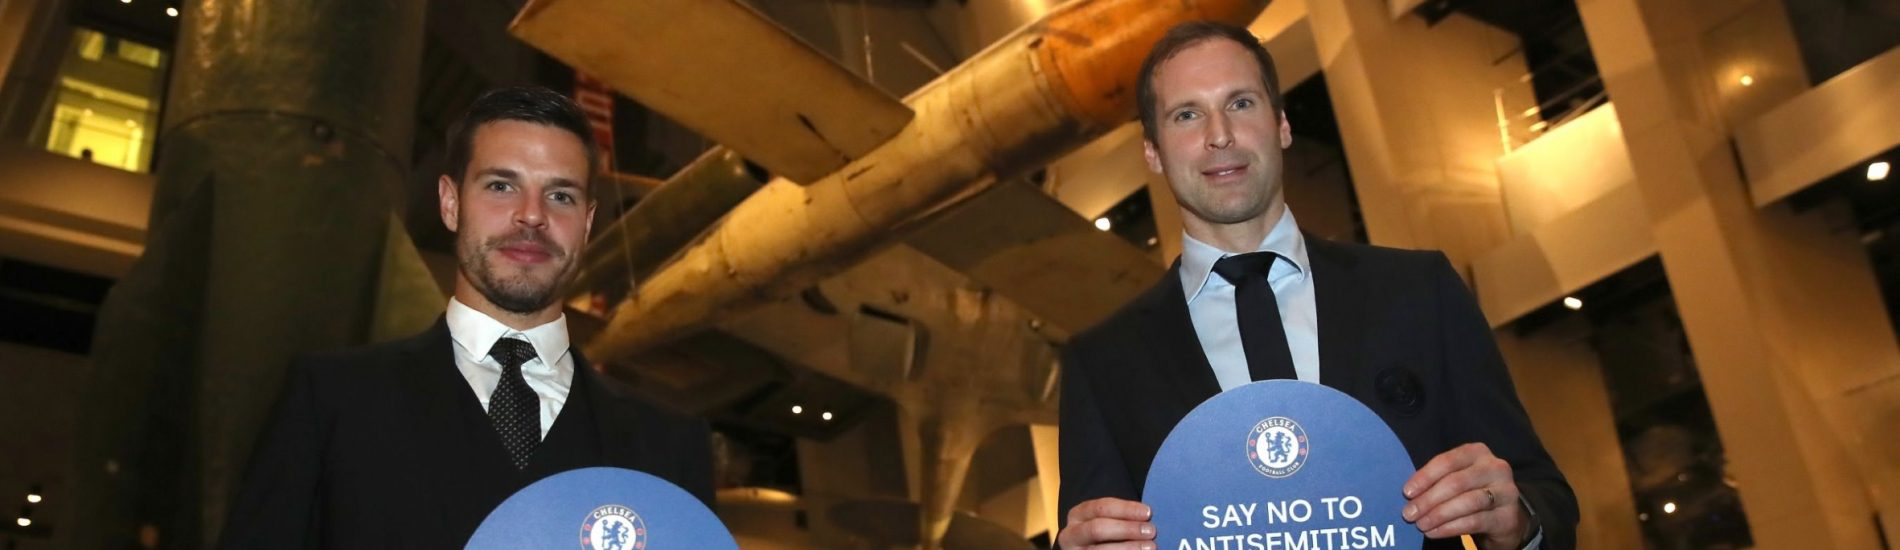 Azpilicueta, Cech and Buck Show Chelsea Support for New War Museum Project